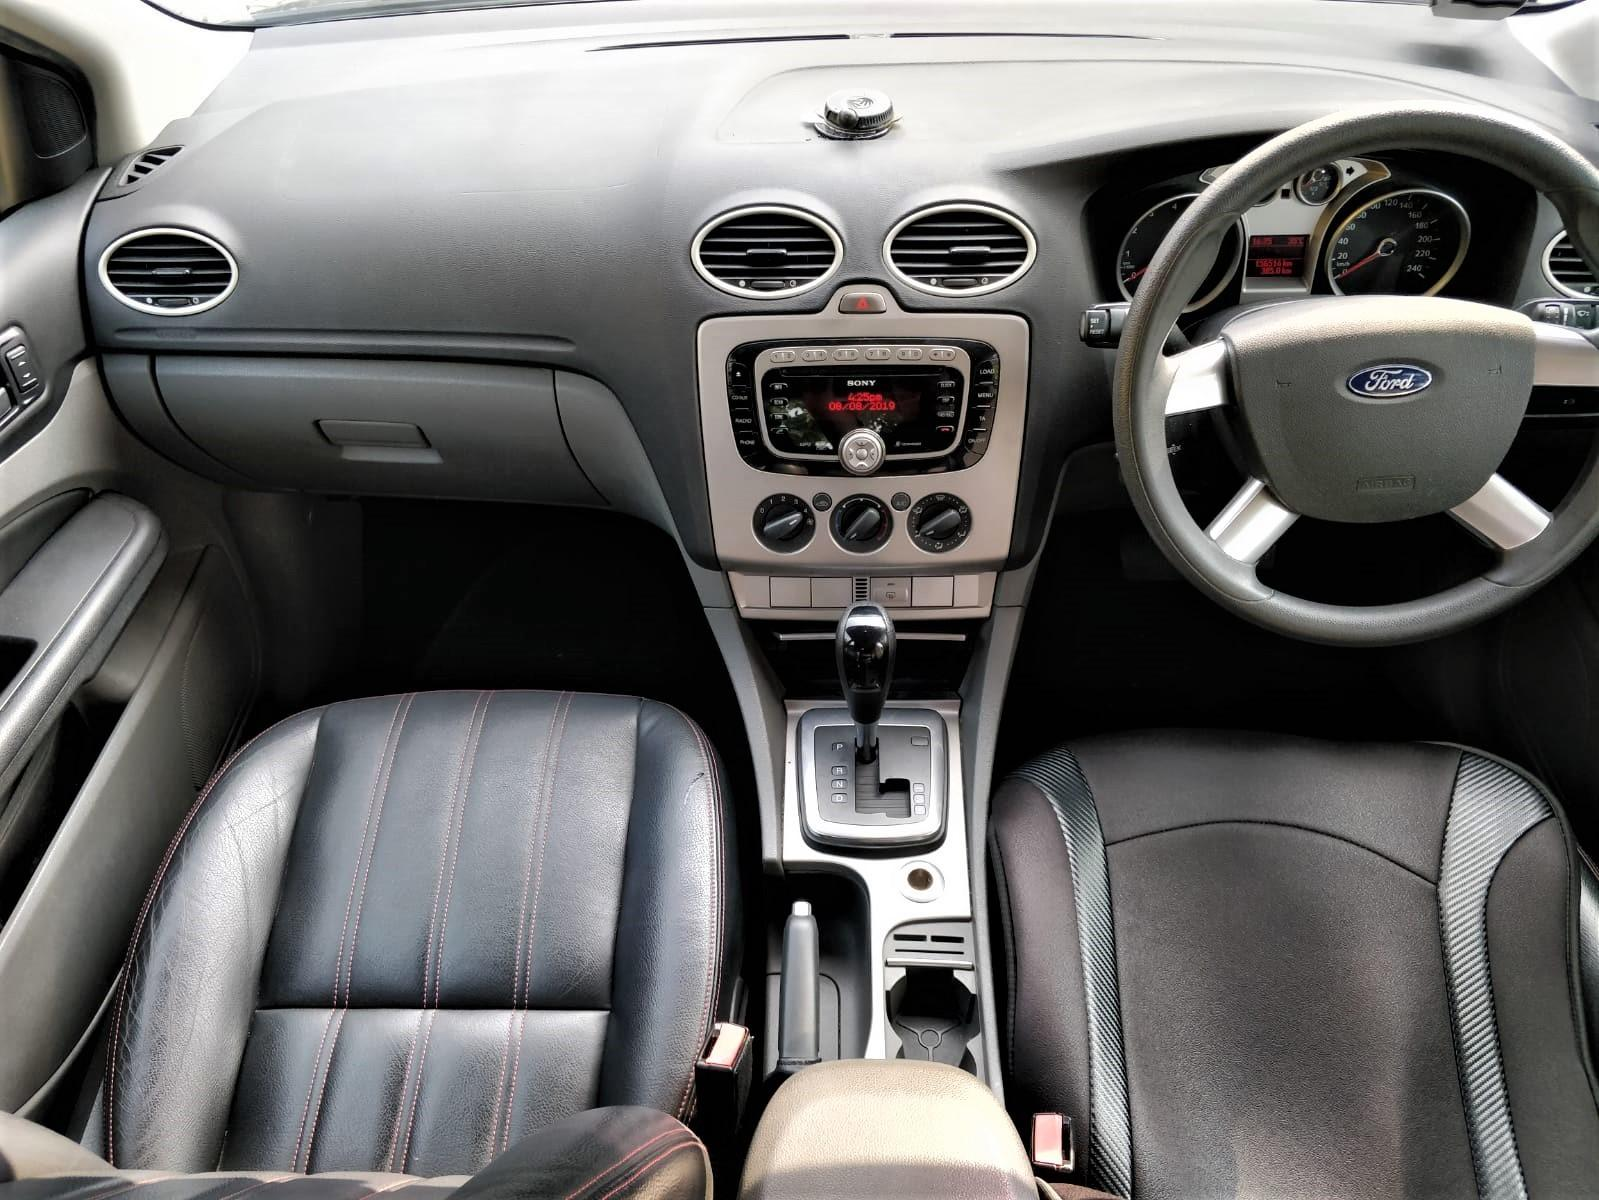 Ford Focus - Lowest rental rates, with the friendliest service!